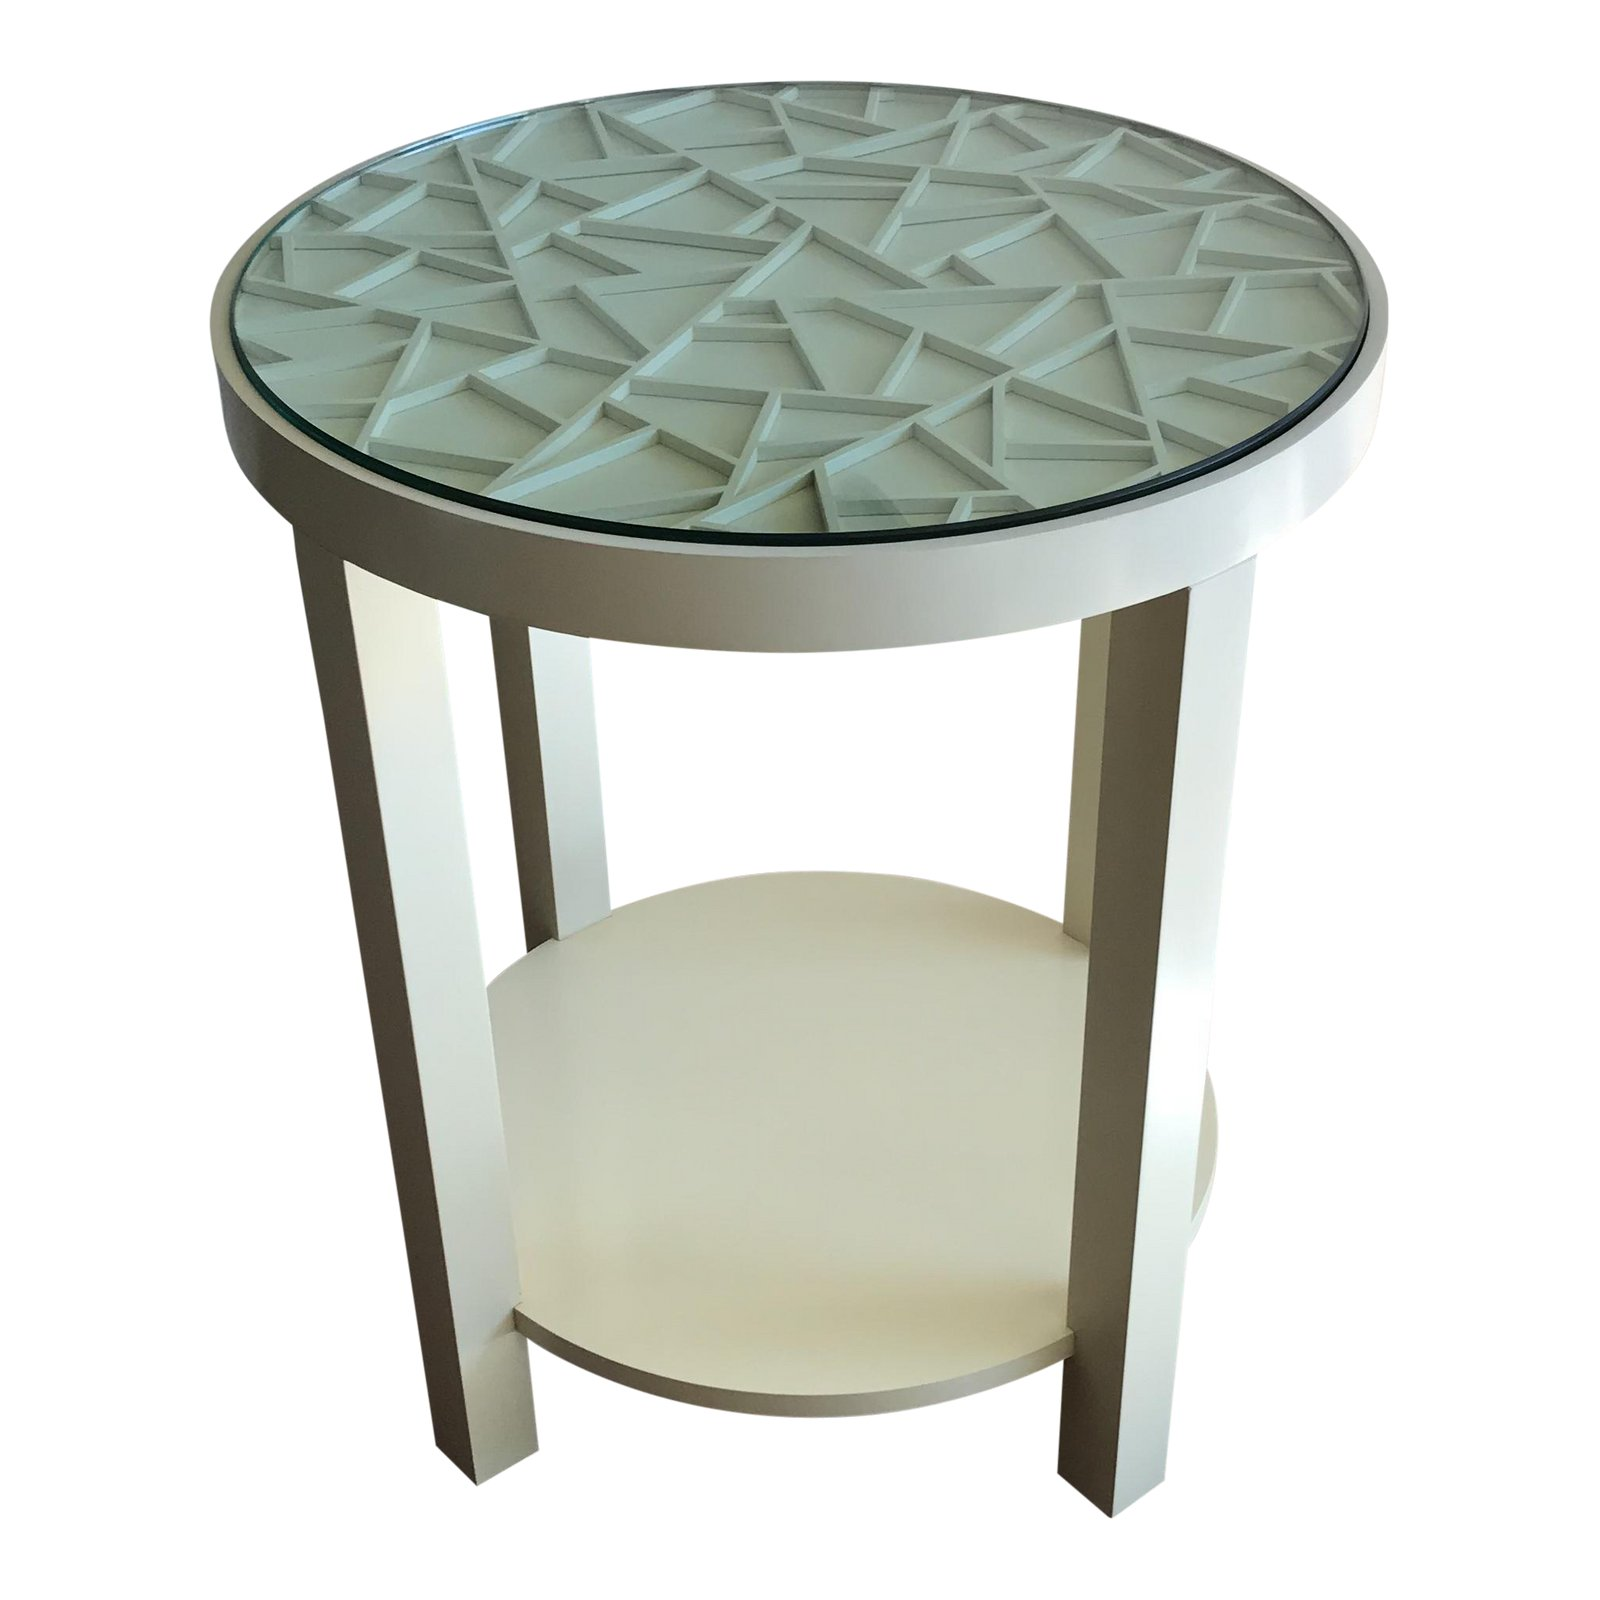 baker furniture round off white with glass top accent table chairish black drum pier area rugs mirage mirrored gold knobs metal patio umbrella stand small corner desk wood dining